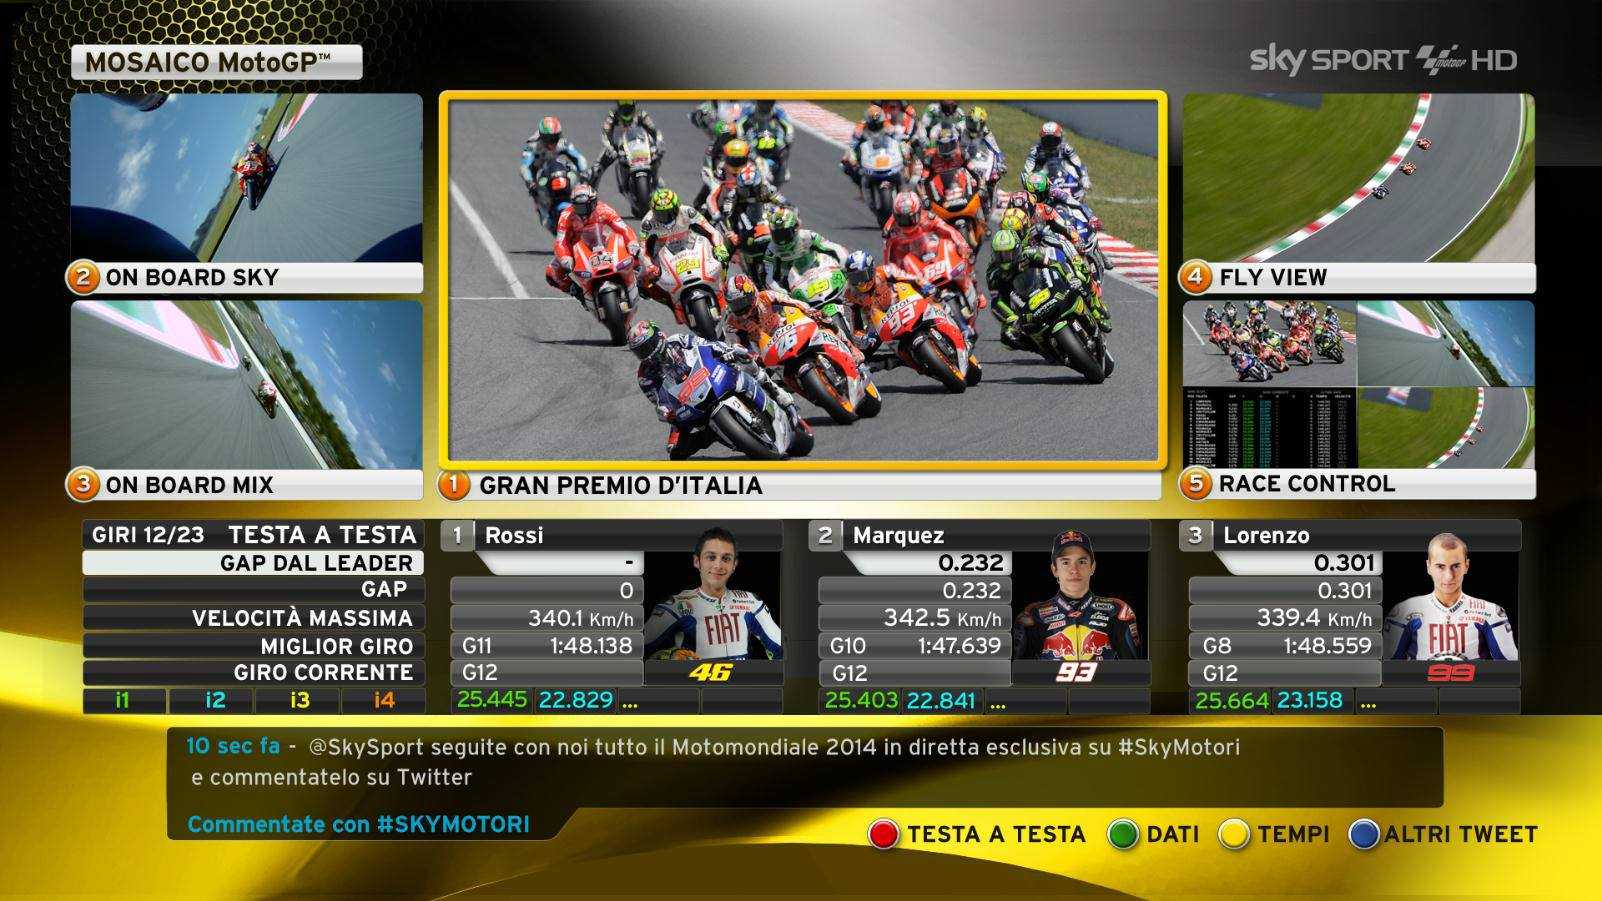 Tutto il Motomondiale su Sky, il calendario 2014 dei Moto GP | Digitale terrestre: Dtti.it